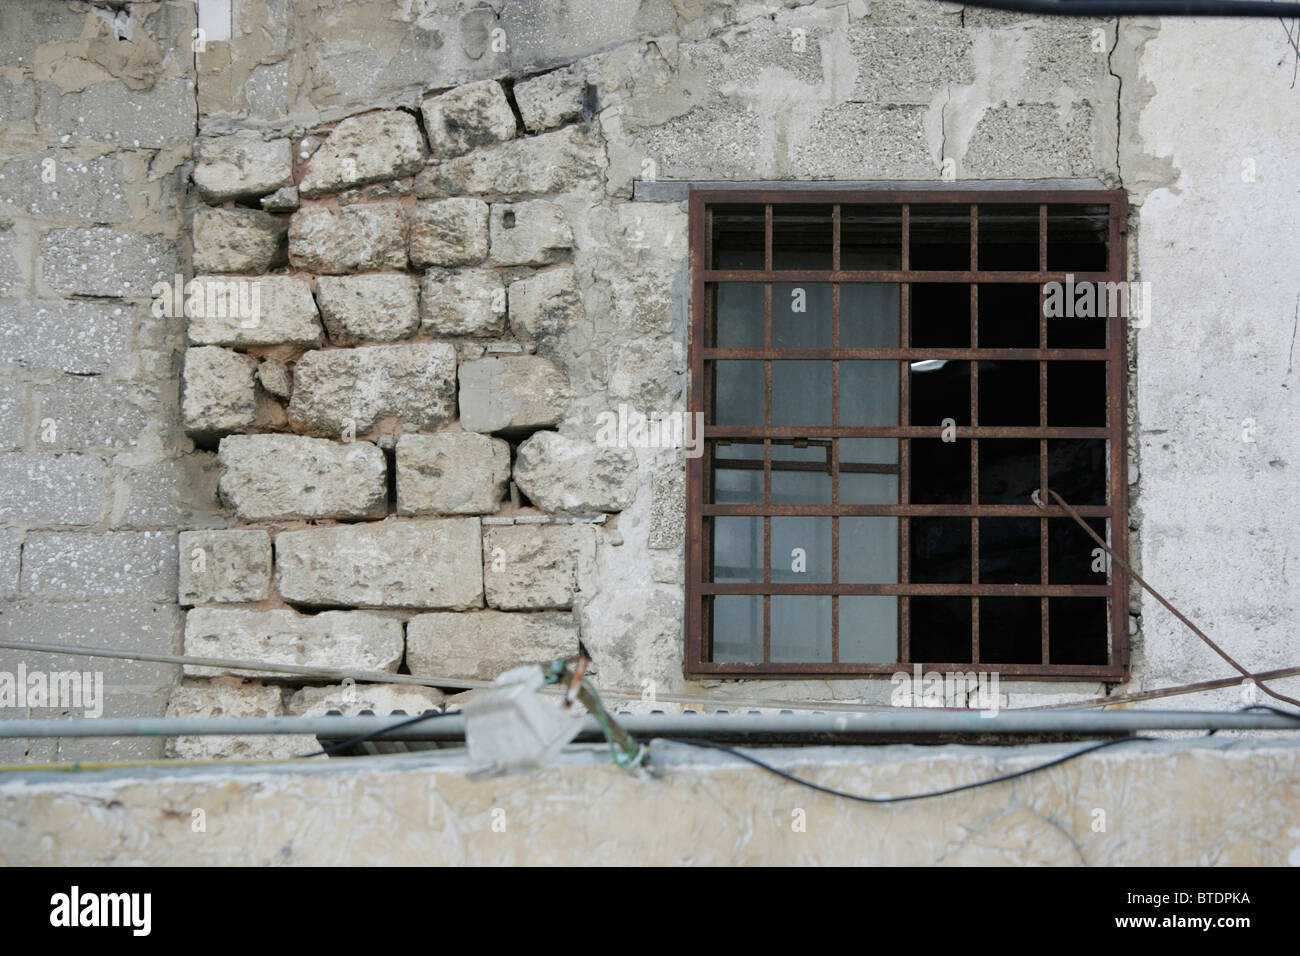 window metal bars in old stockfotos window metal bars in old bilder alamy. Black Bedroom Furniture Sets. Home Design Ideas